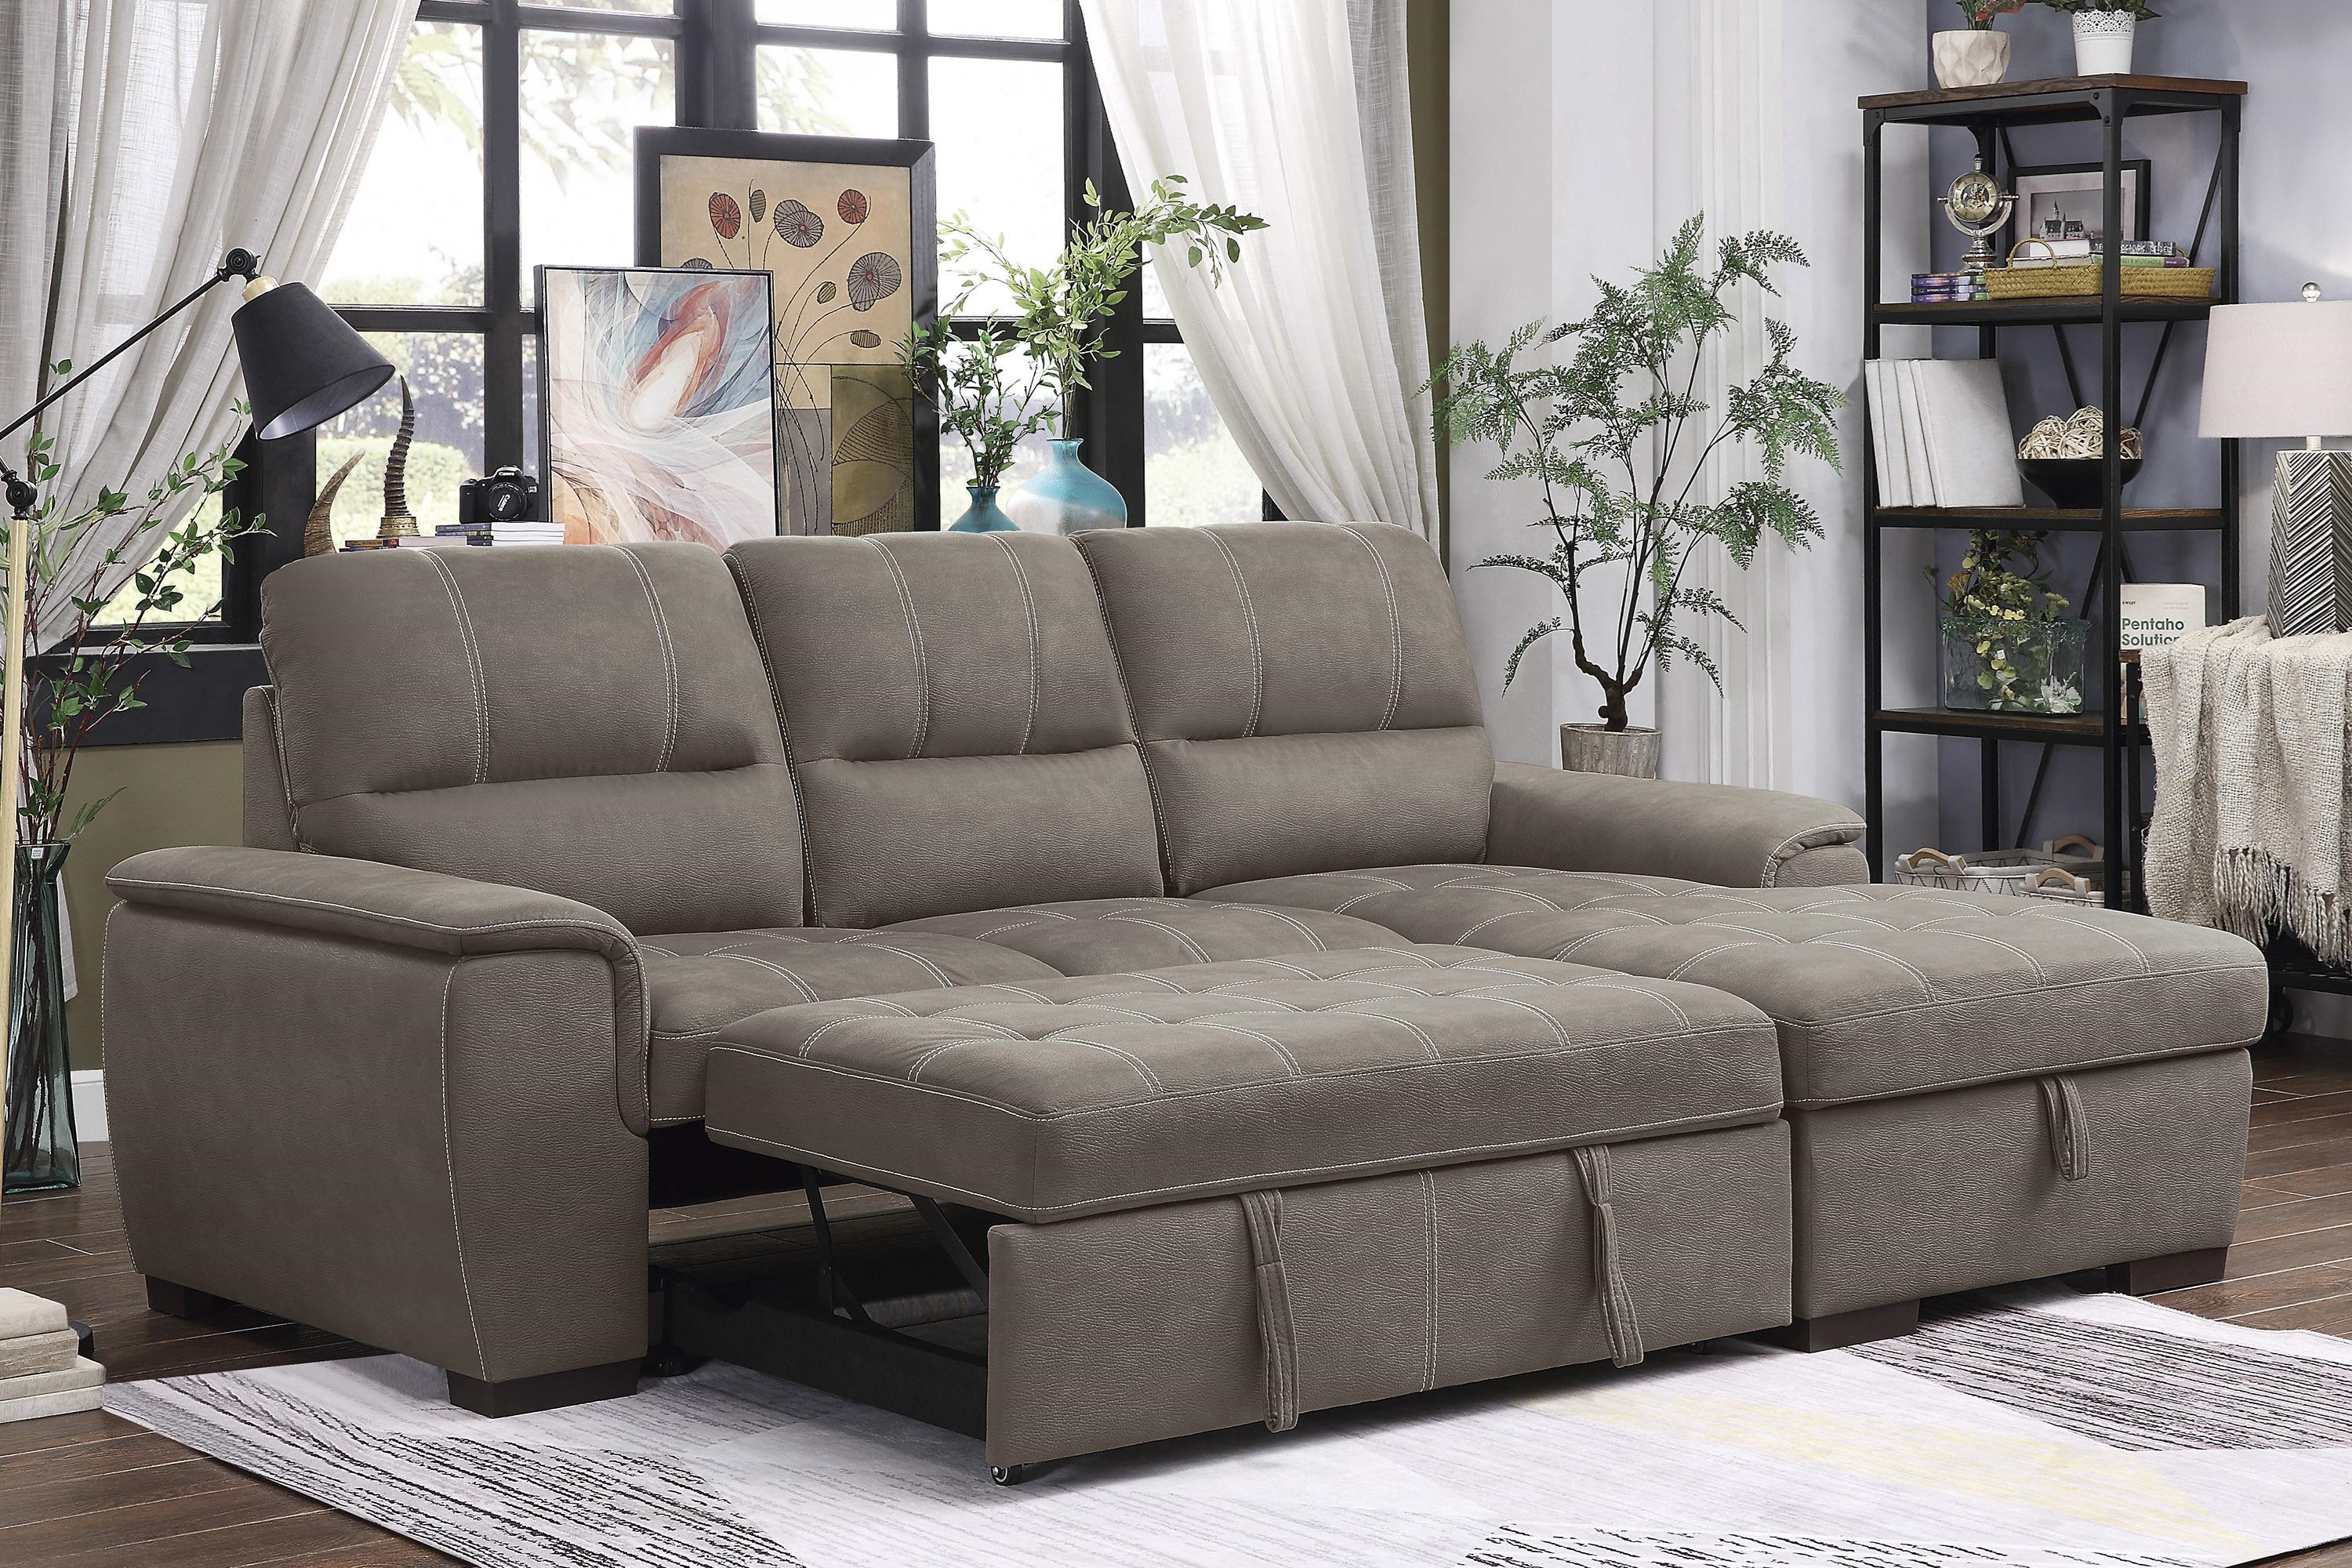 Andes Sectional with Right Chaise by Homelegance at Beck's Furniture